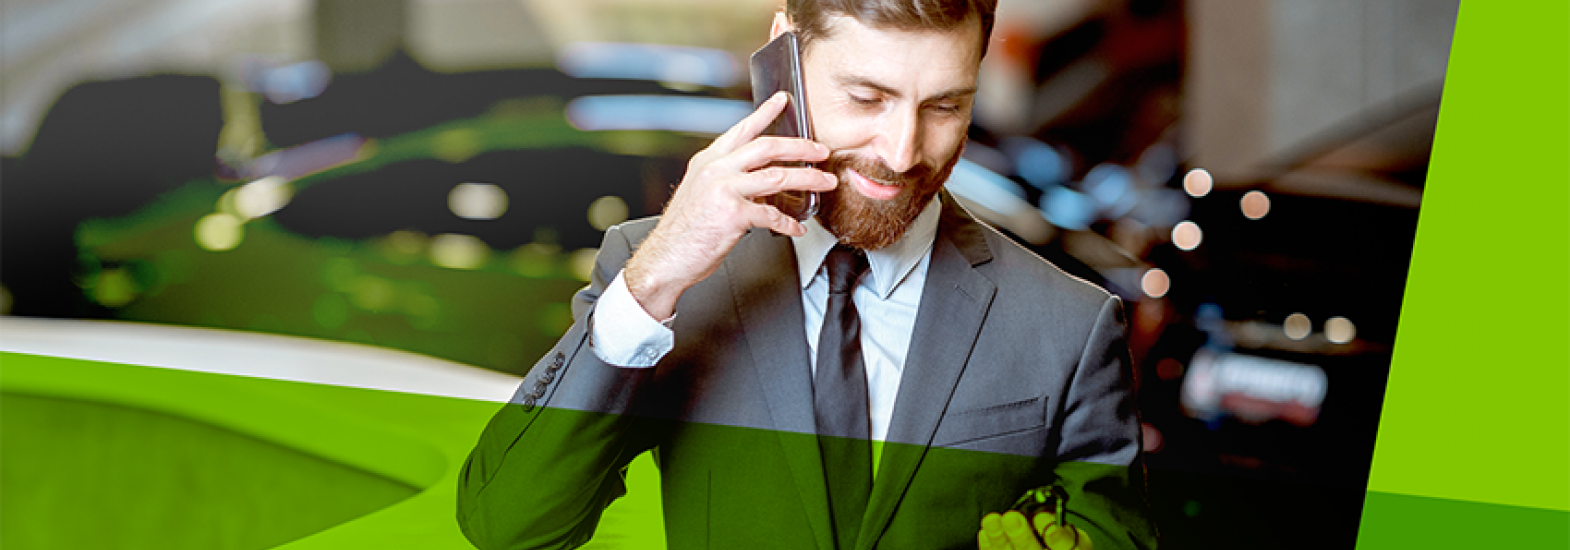 HOW AUTO DEALERS CAN GAIN MORE CUSTOMERS OVER THE PHONE